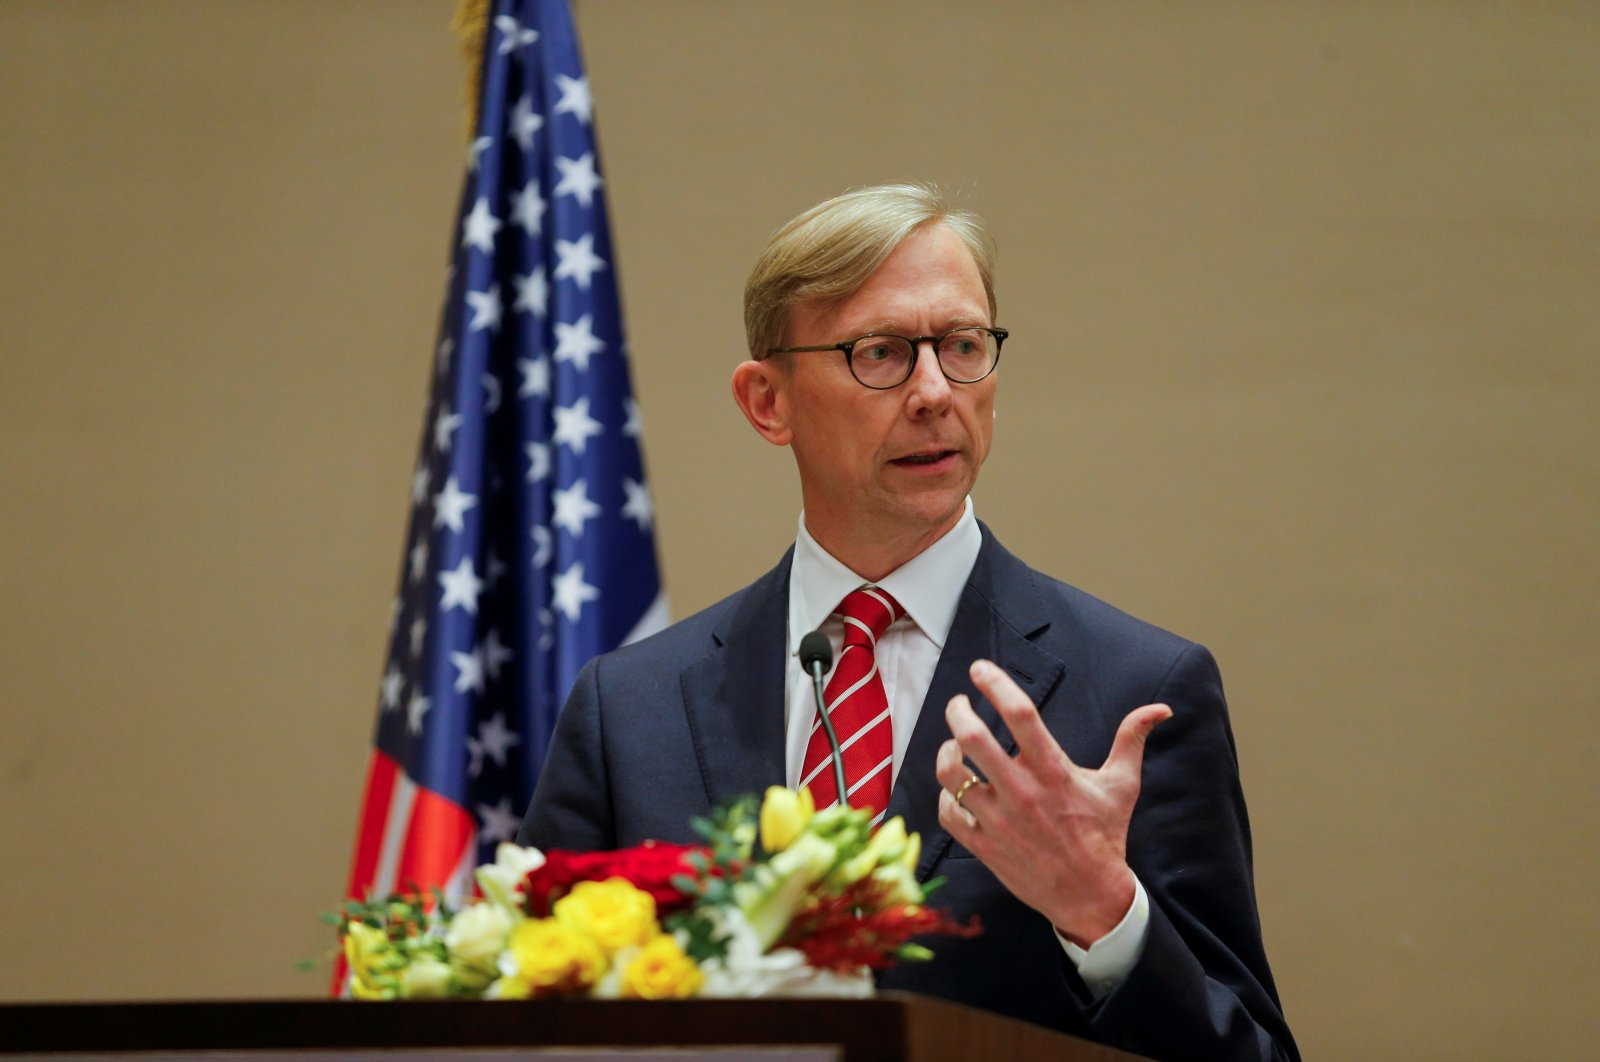 U.S. Special Representative for Iran Brian Hook speaks during a joint news conference with Bahrain Foreign Minister, Dr. Abdullatif bin Rashid Al Zayani (not pictured), in Manama, Bahrain, June 29, 2020. (Reuters Photo)